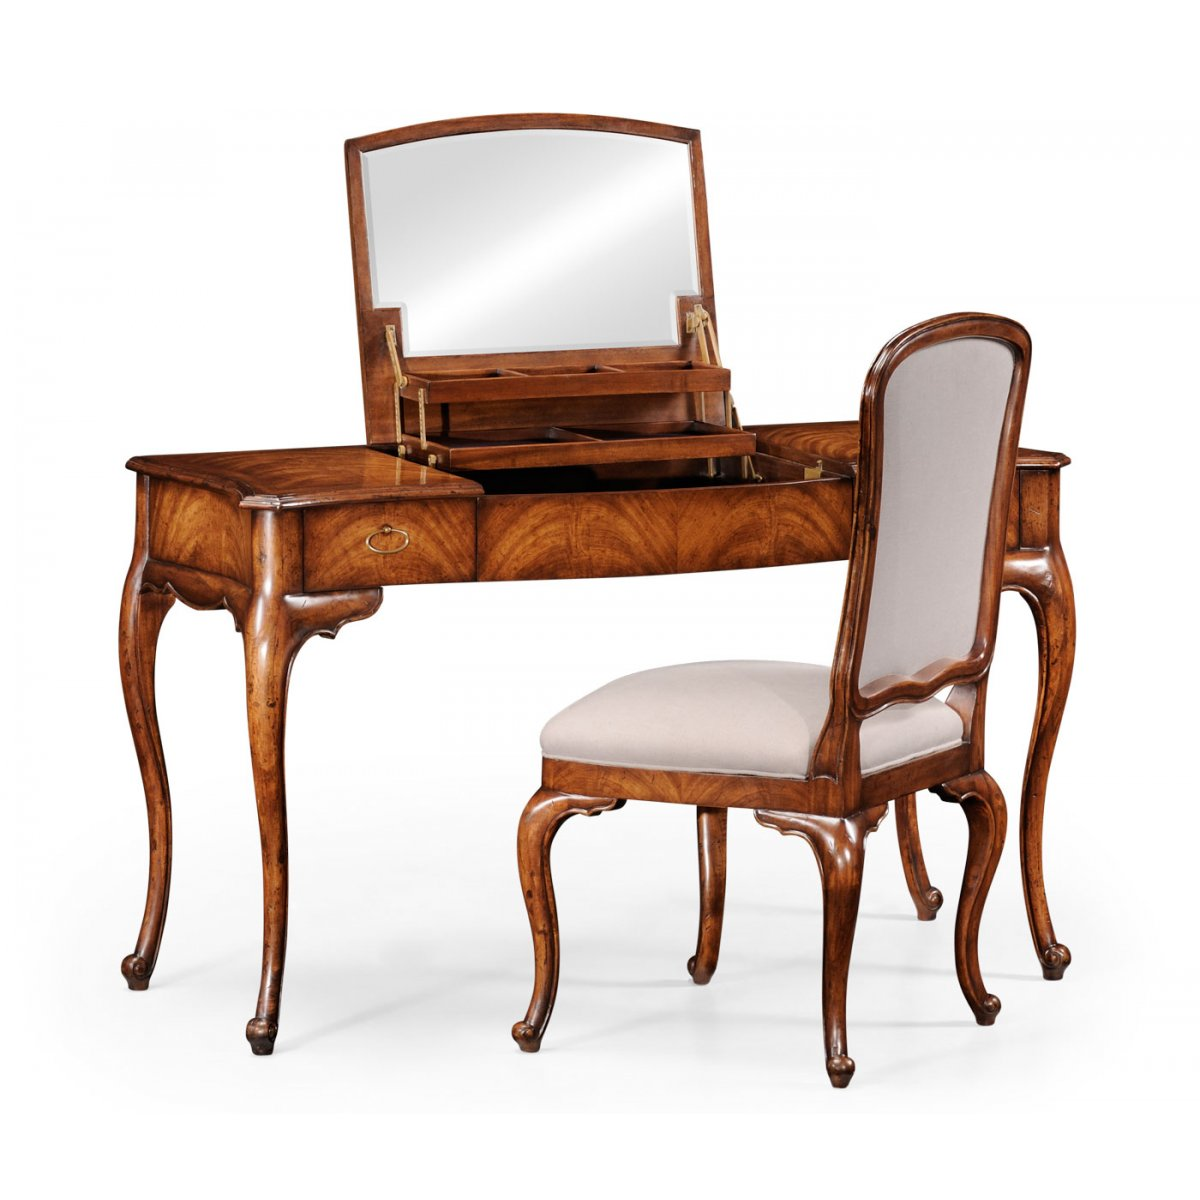 Walnut Dressing Table With Mirror Swanky Interiors